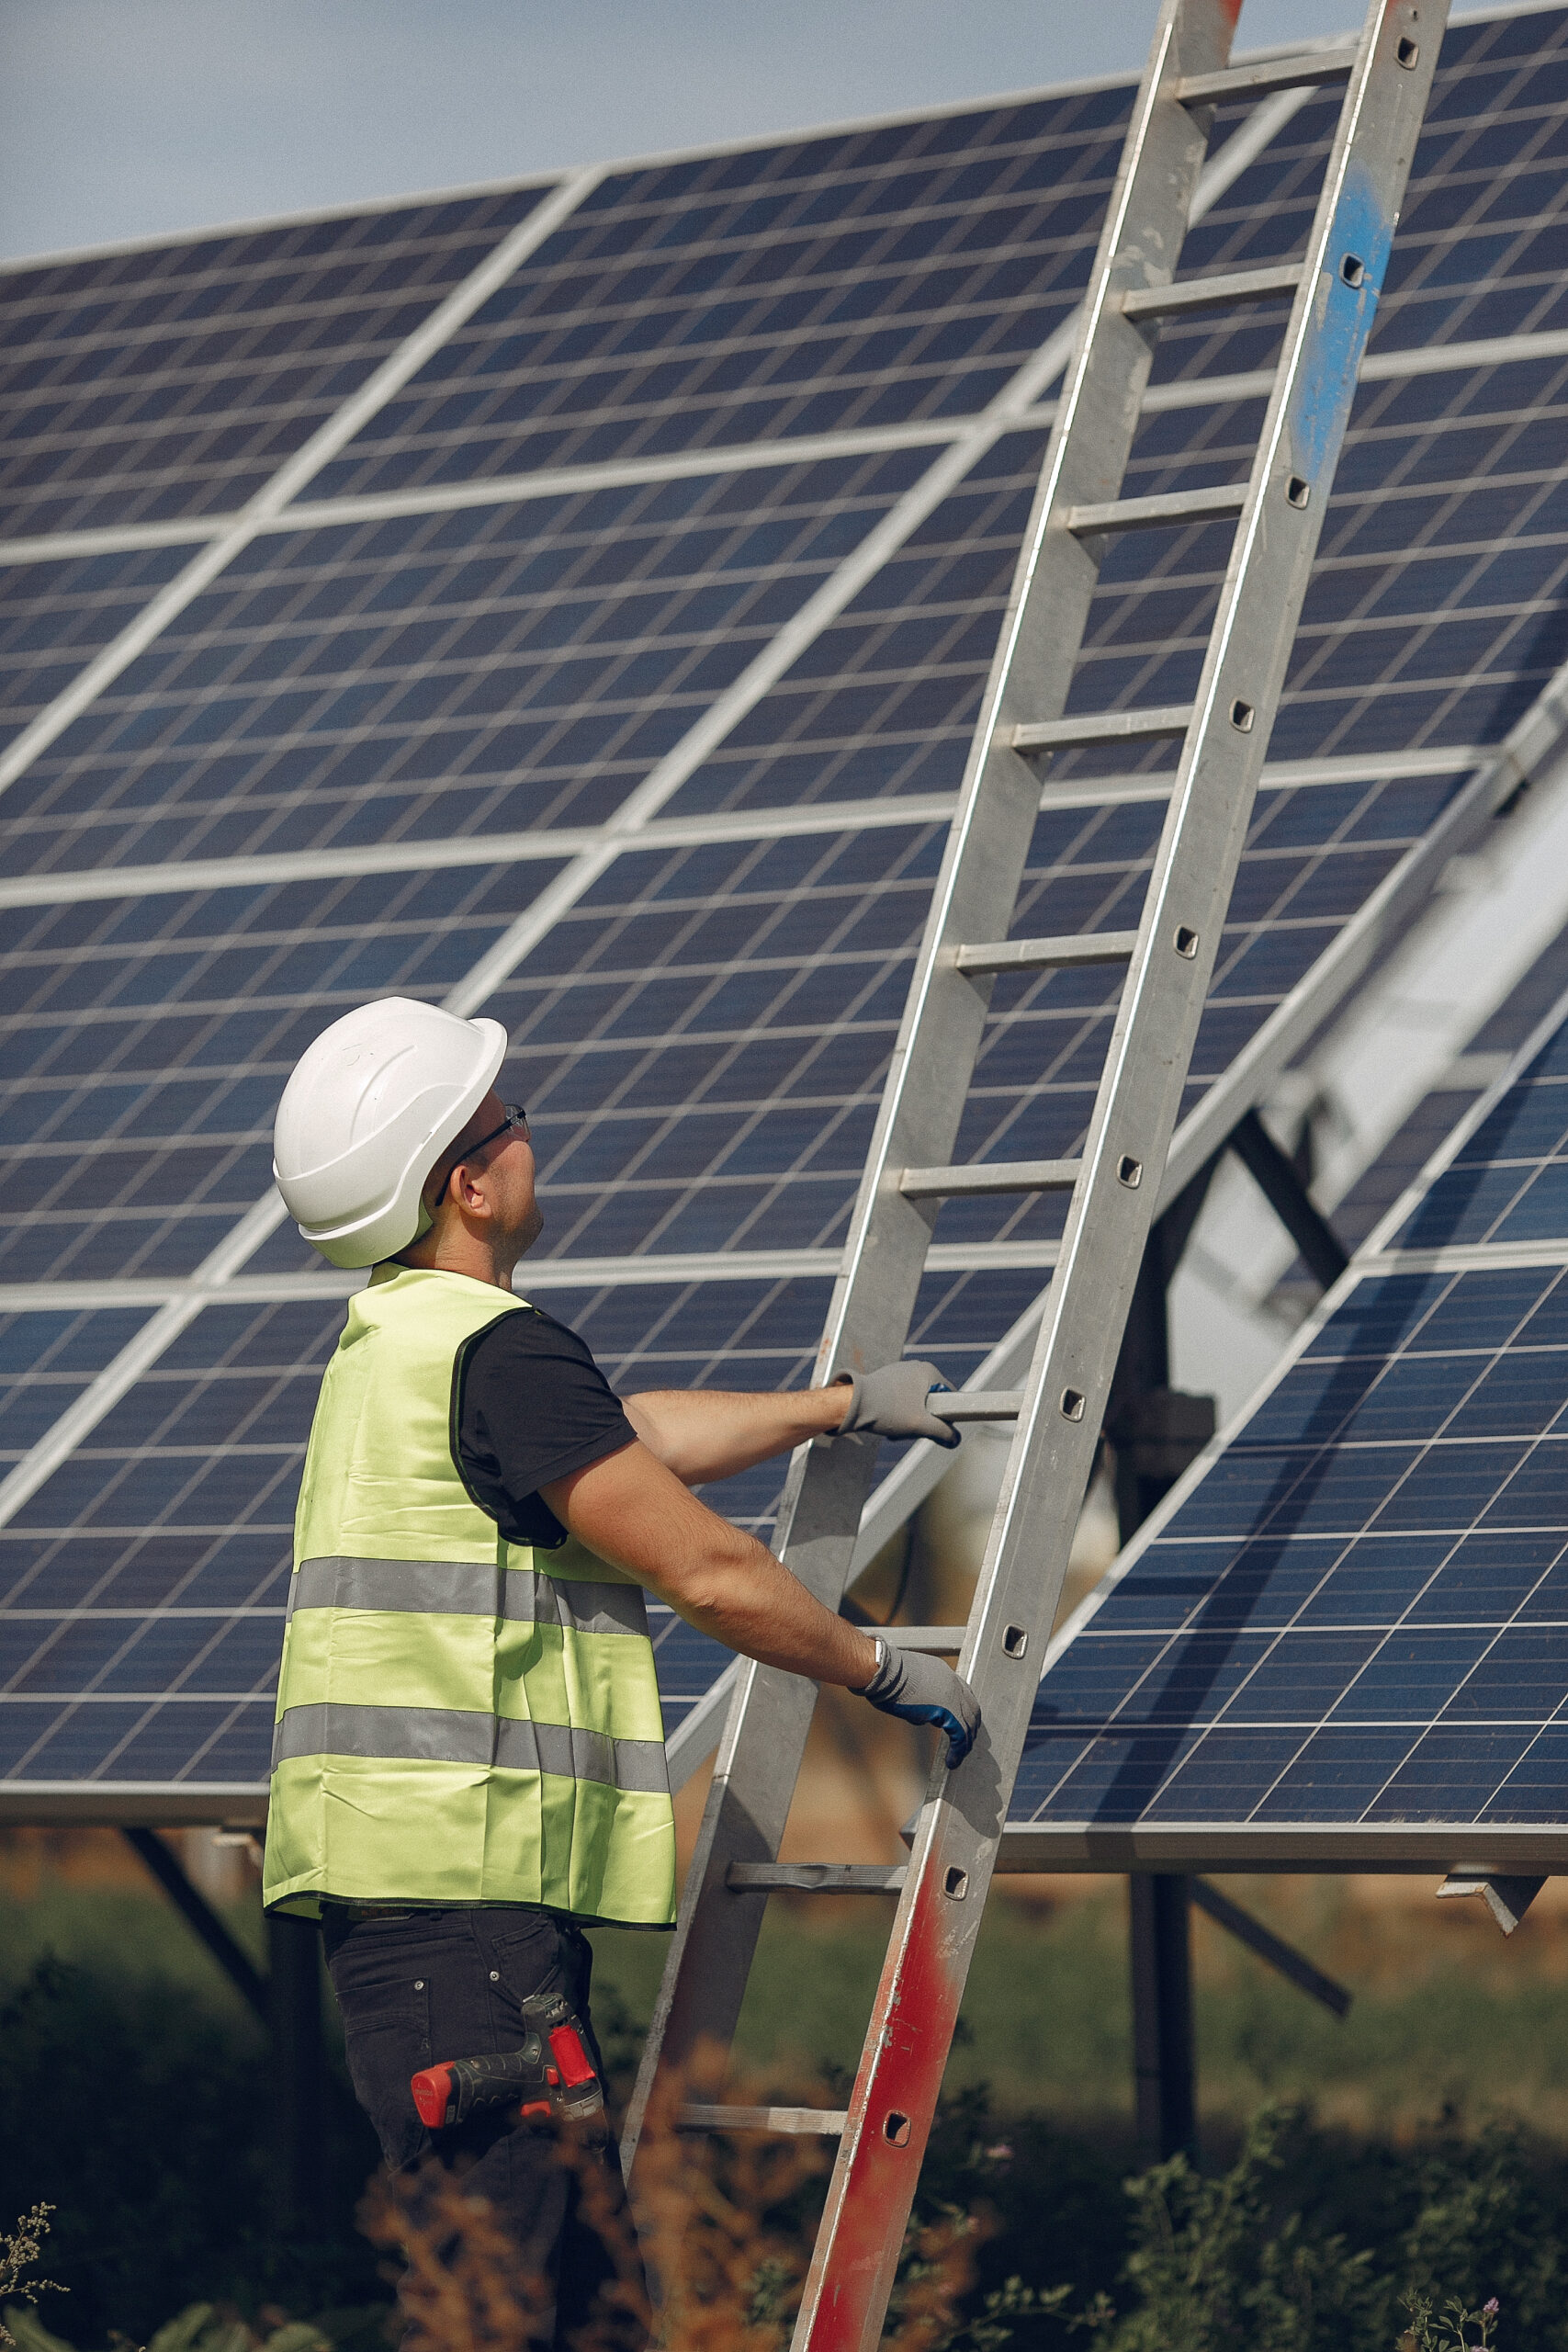 Engineer in a white helmet. Man near solar panel. Worker with a ladder